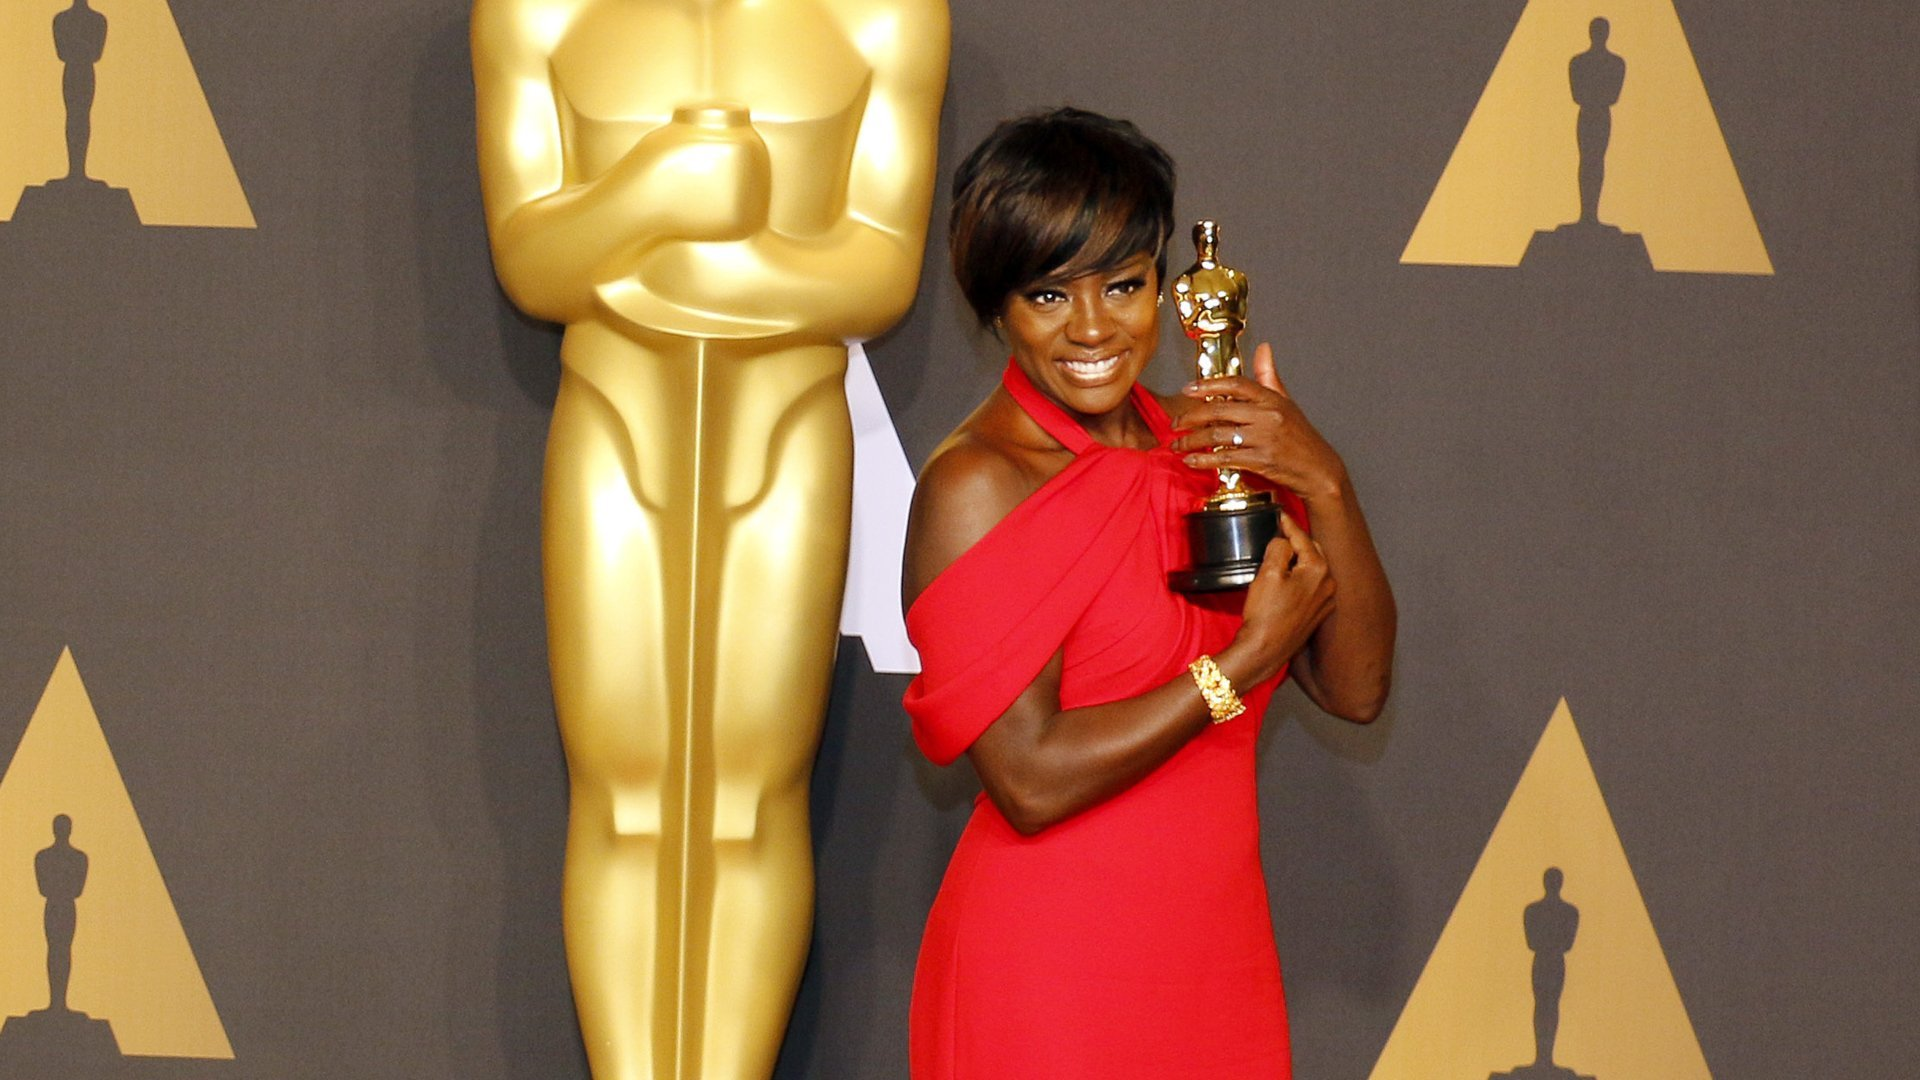 From Tom Hanks to Viola Davis, how much are the top Hollywood stars worth?